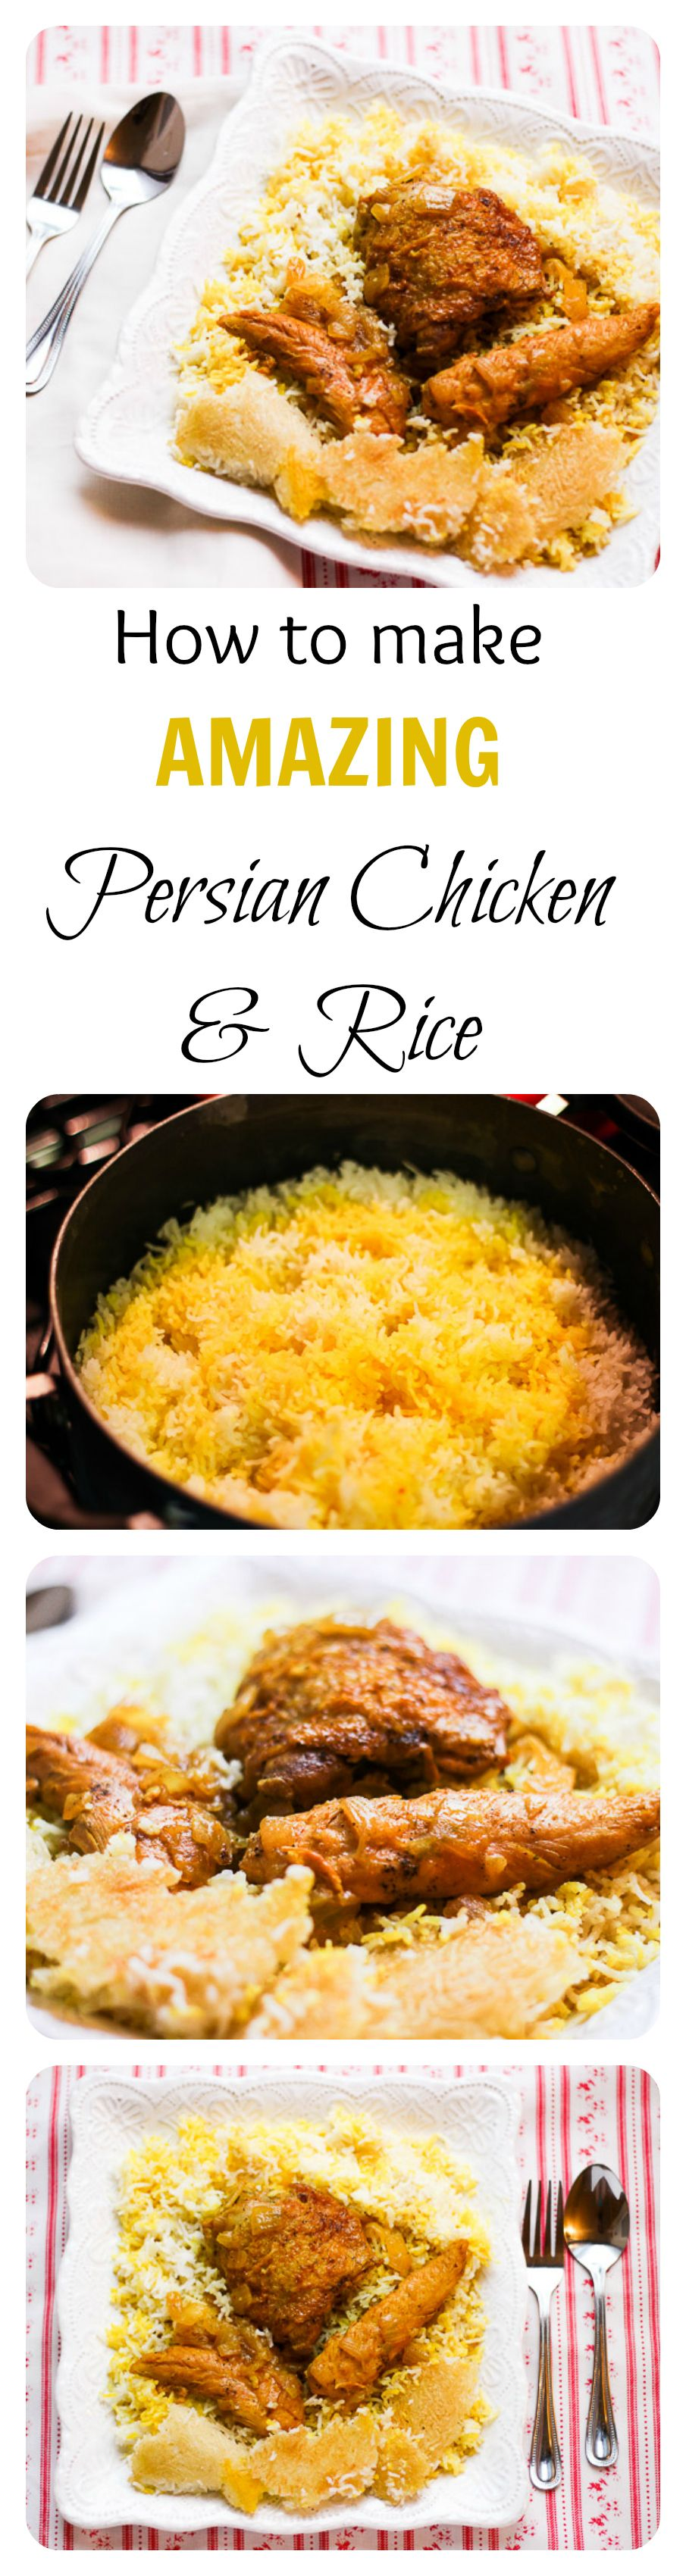 Chicken and rice morgh polo recipe rice recipes persian and polos dishes forumfinder Gallery